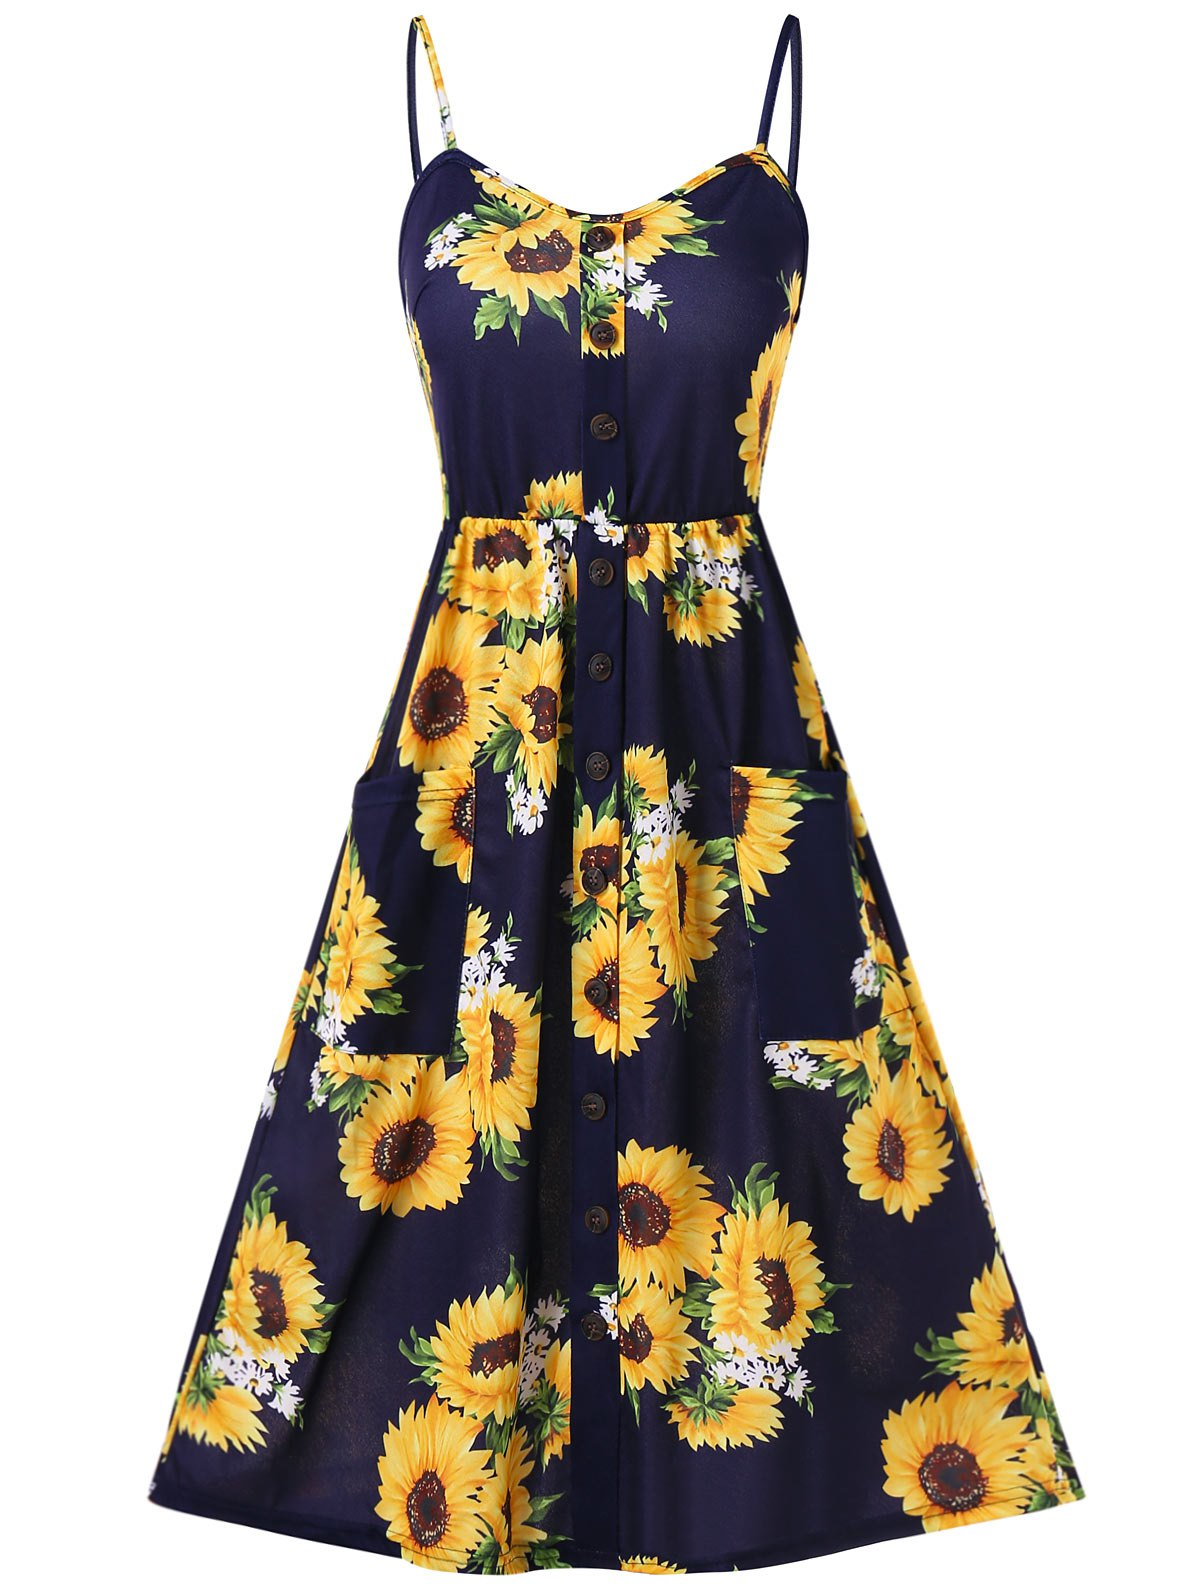 Chic Spaghetti Strap Sunflower Print Buttoned Mini Dress